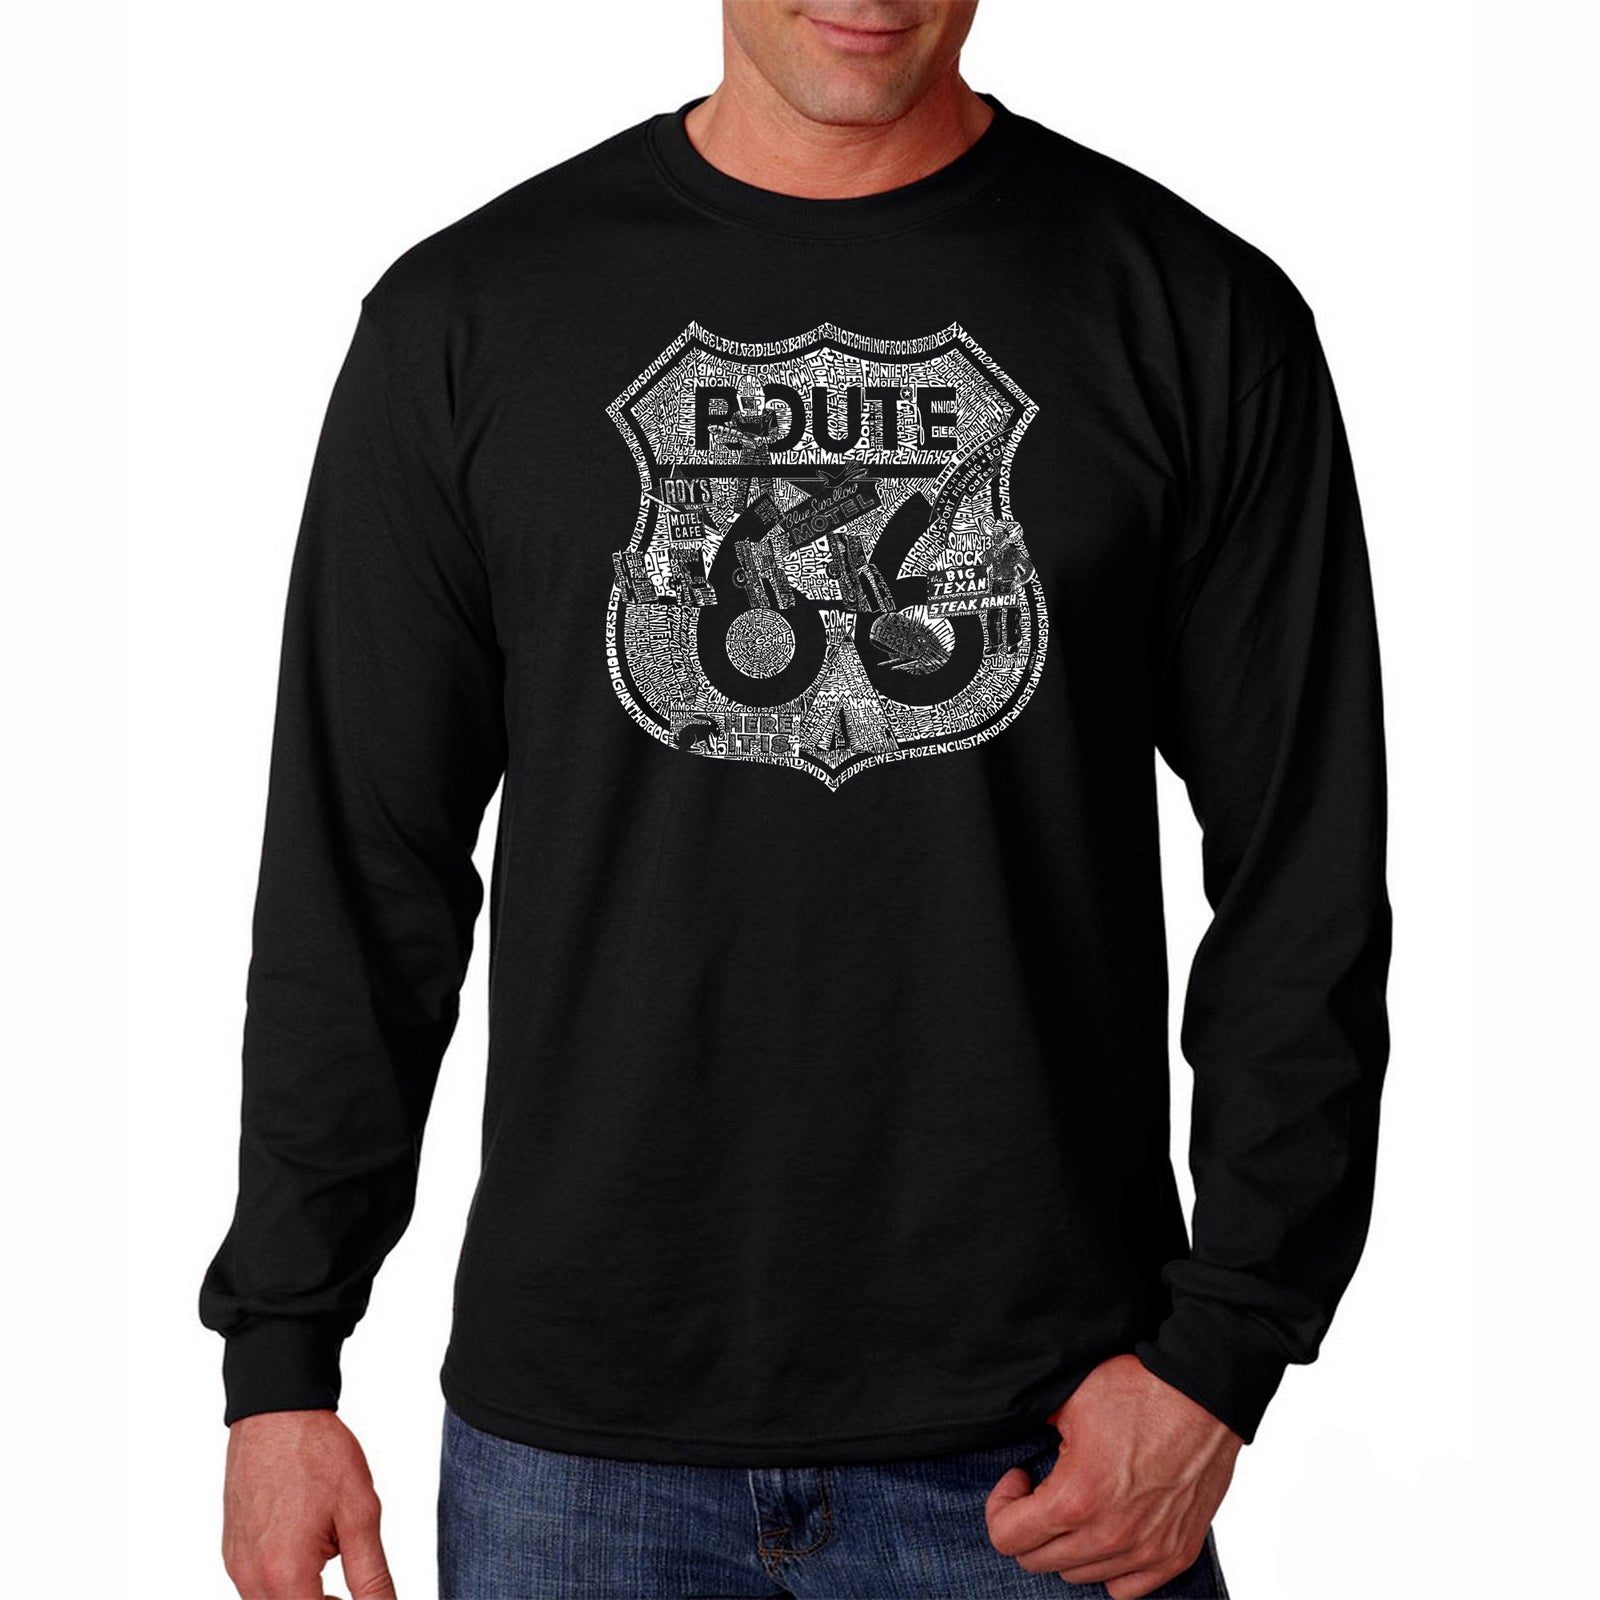 Men's Long Sleeve T-shirt - Stops Along Route 66